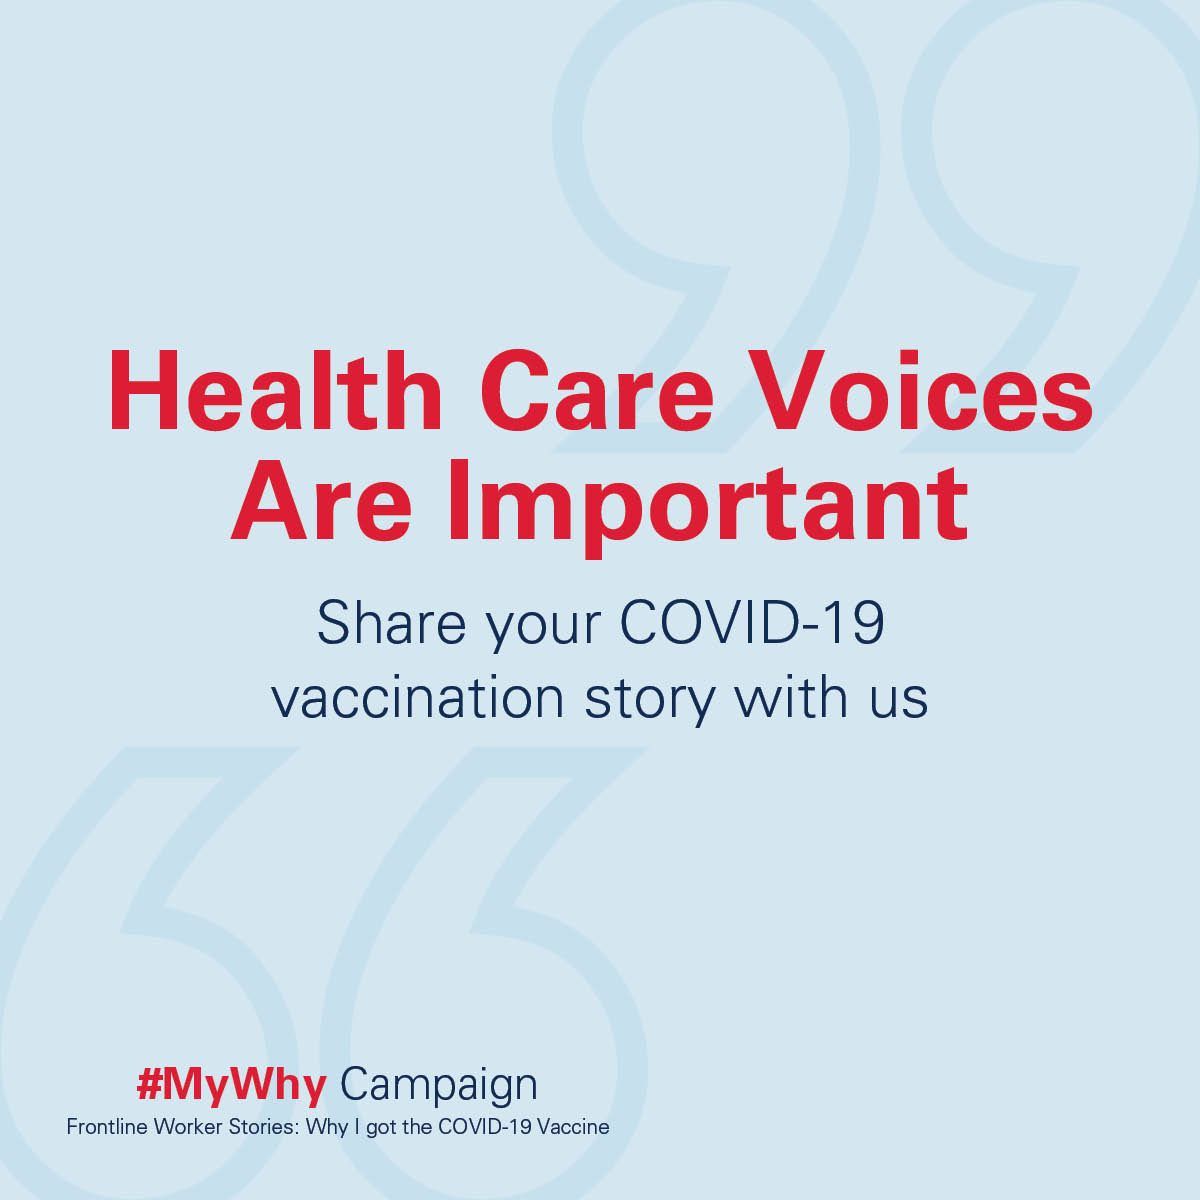 Health Care Voices Are Important. Share your COVID-19 vaccination story